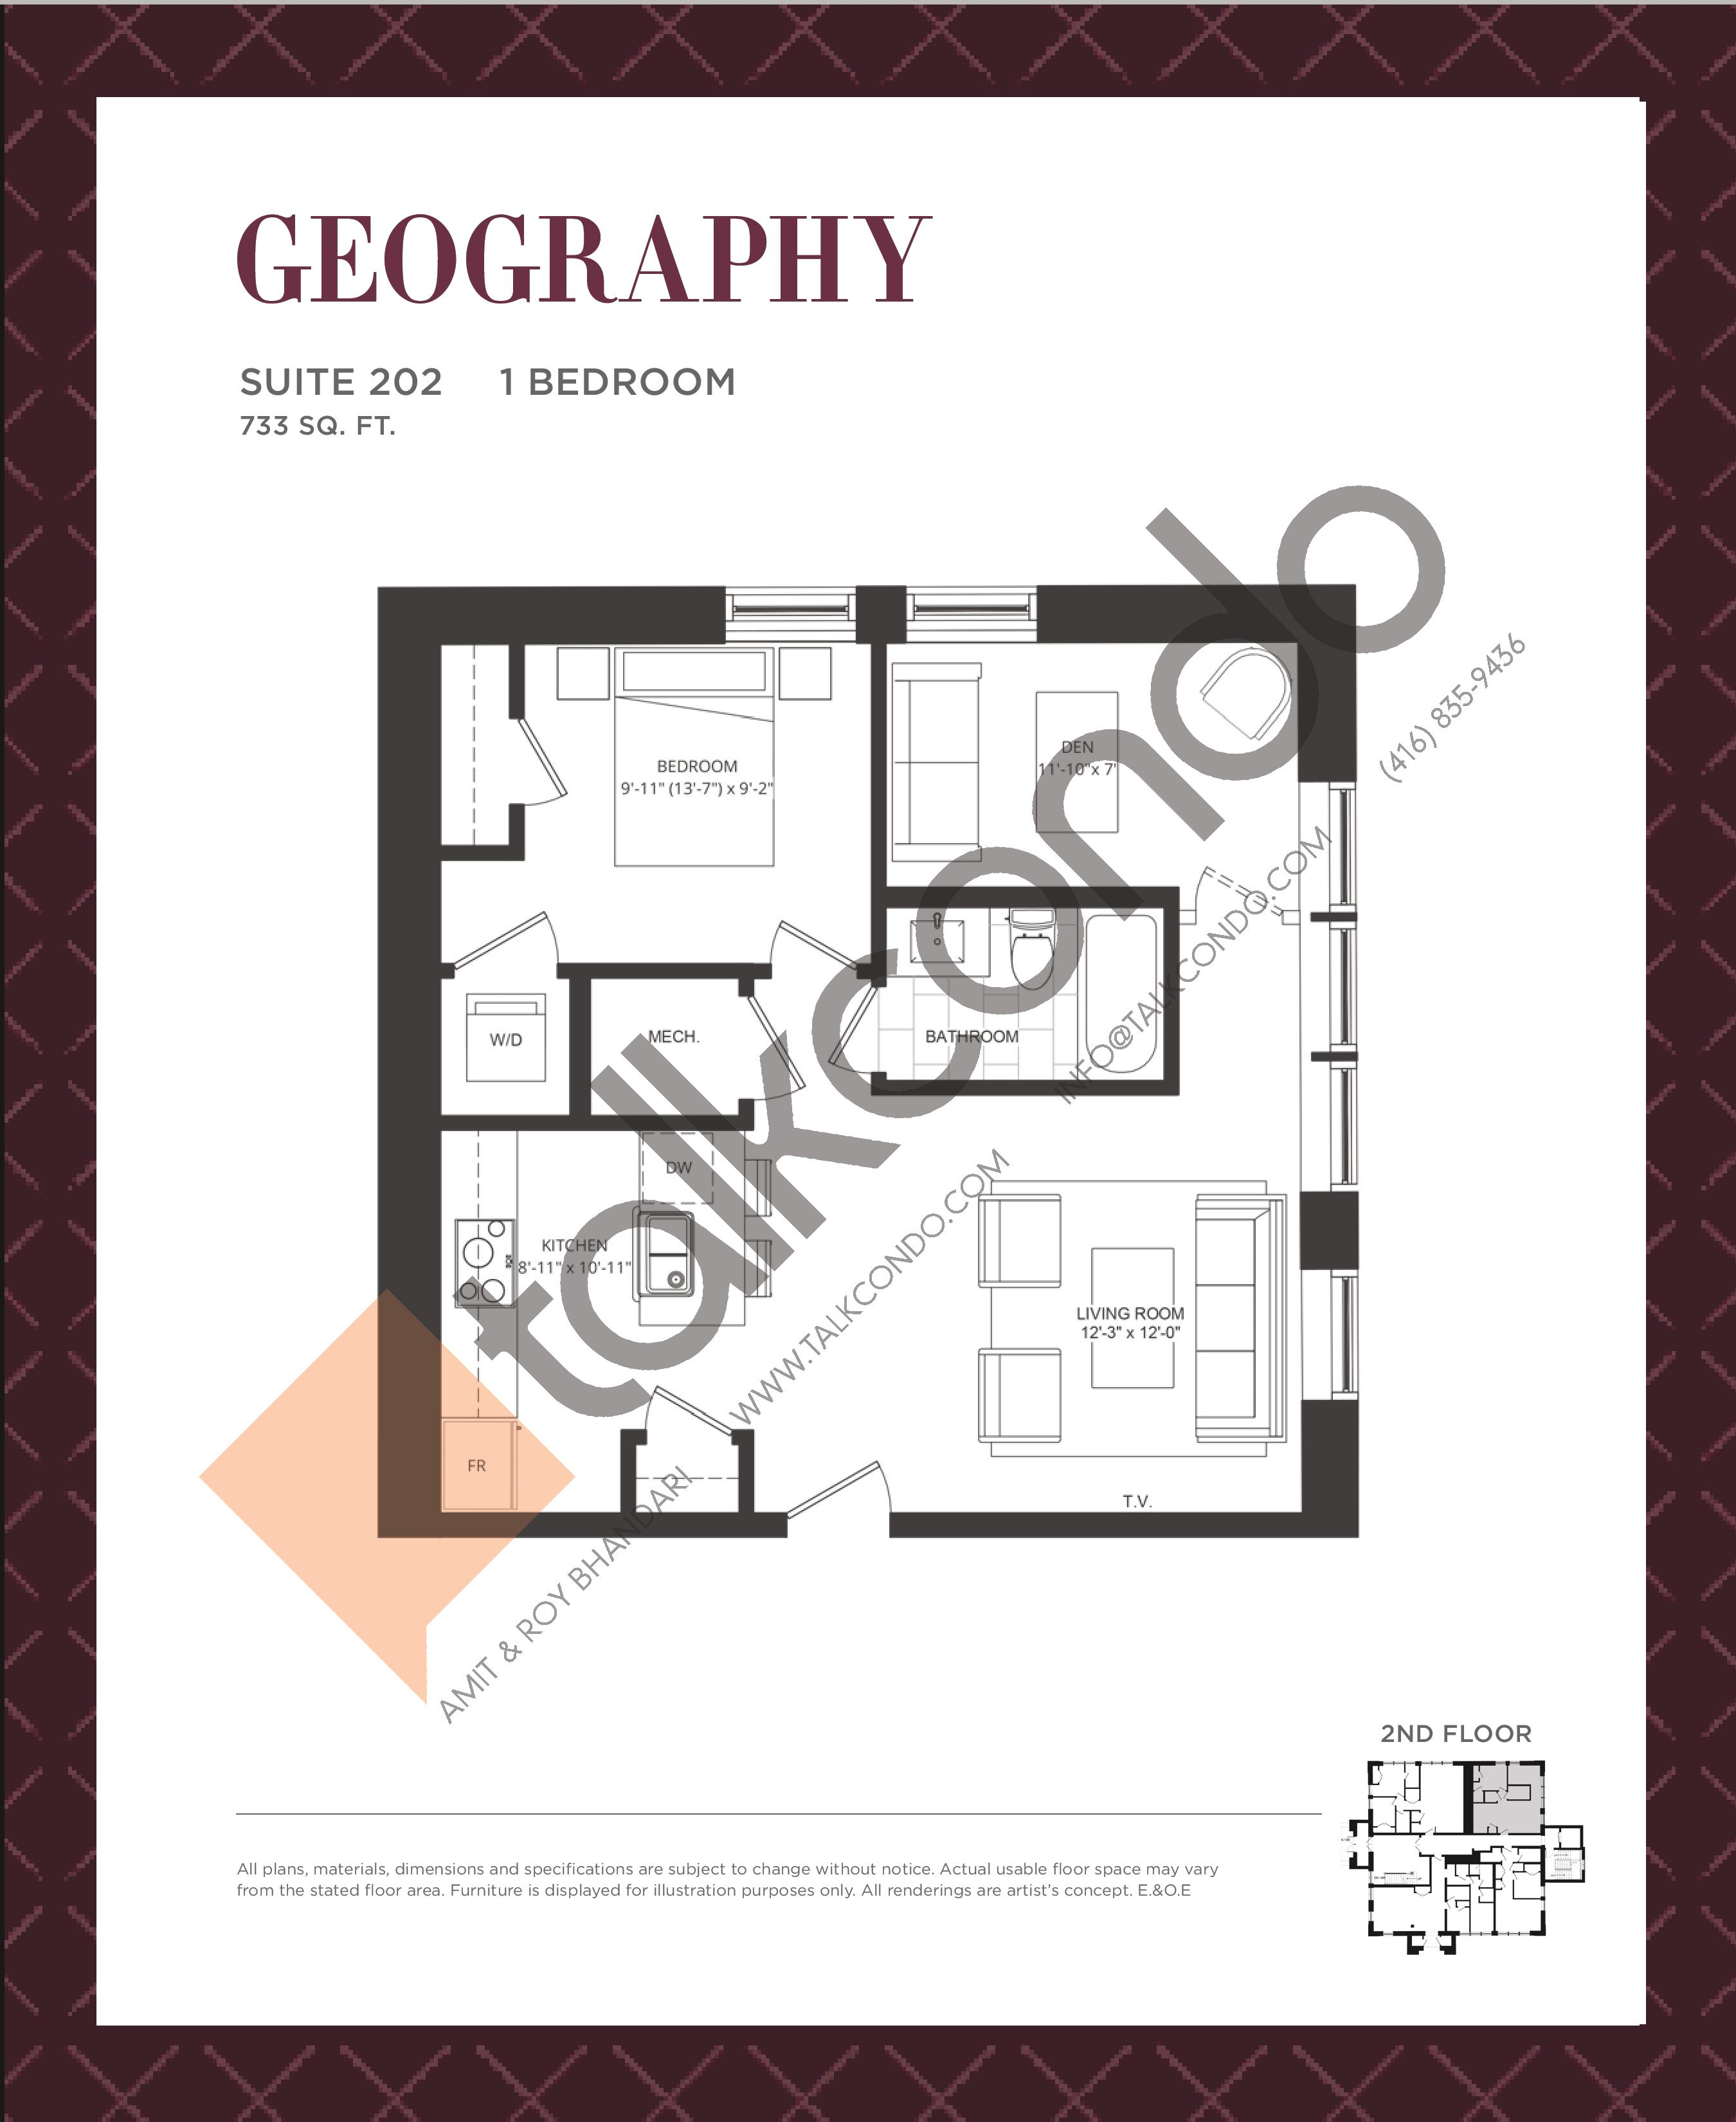 Geography Floor Plan at King George School Lofts & Town Homes - 733 sq.ft